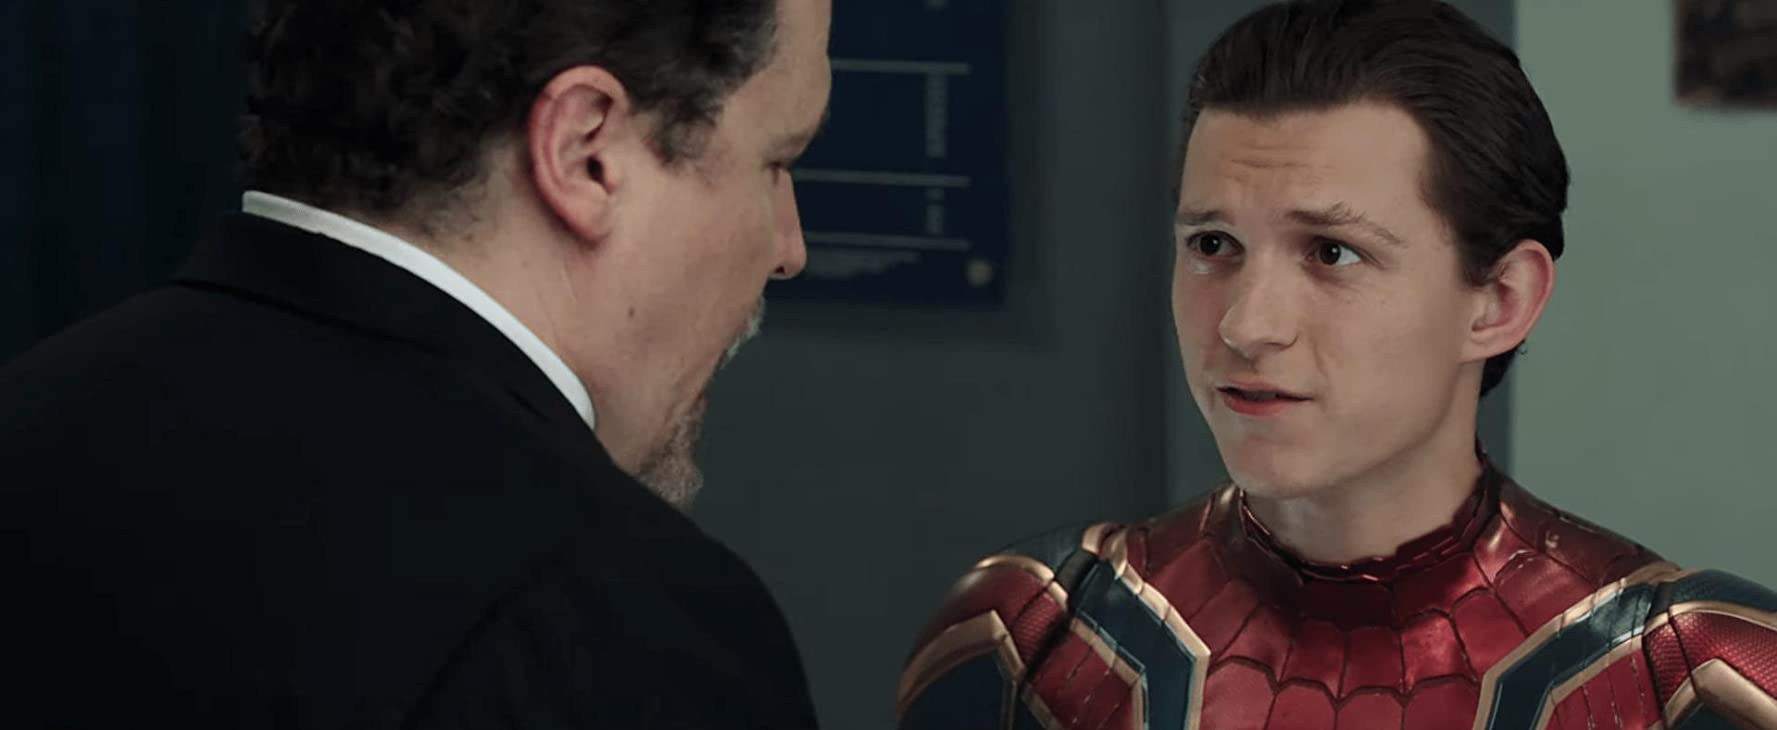 Jon Favreau and Tom Holland in Spider-Man: Far from Home (2019)